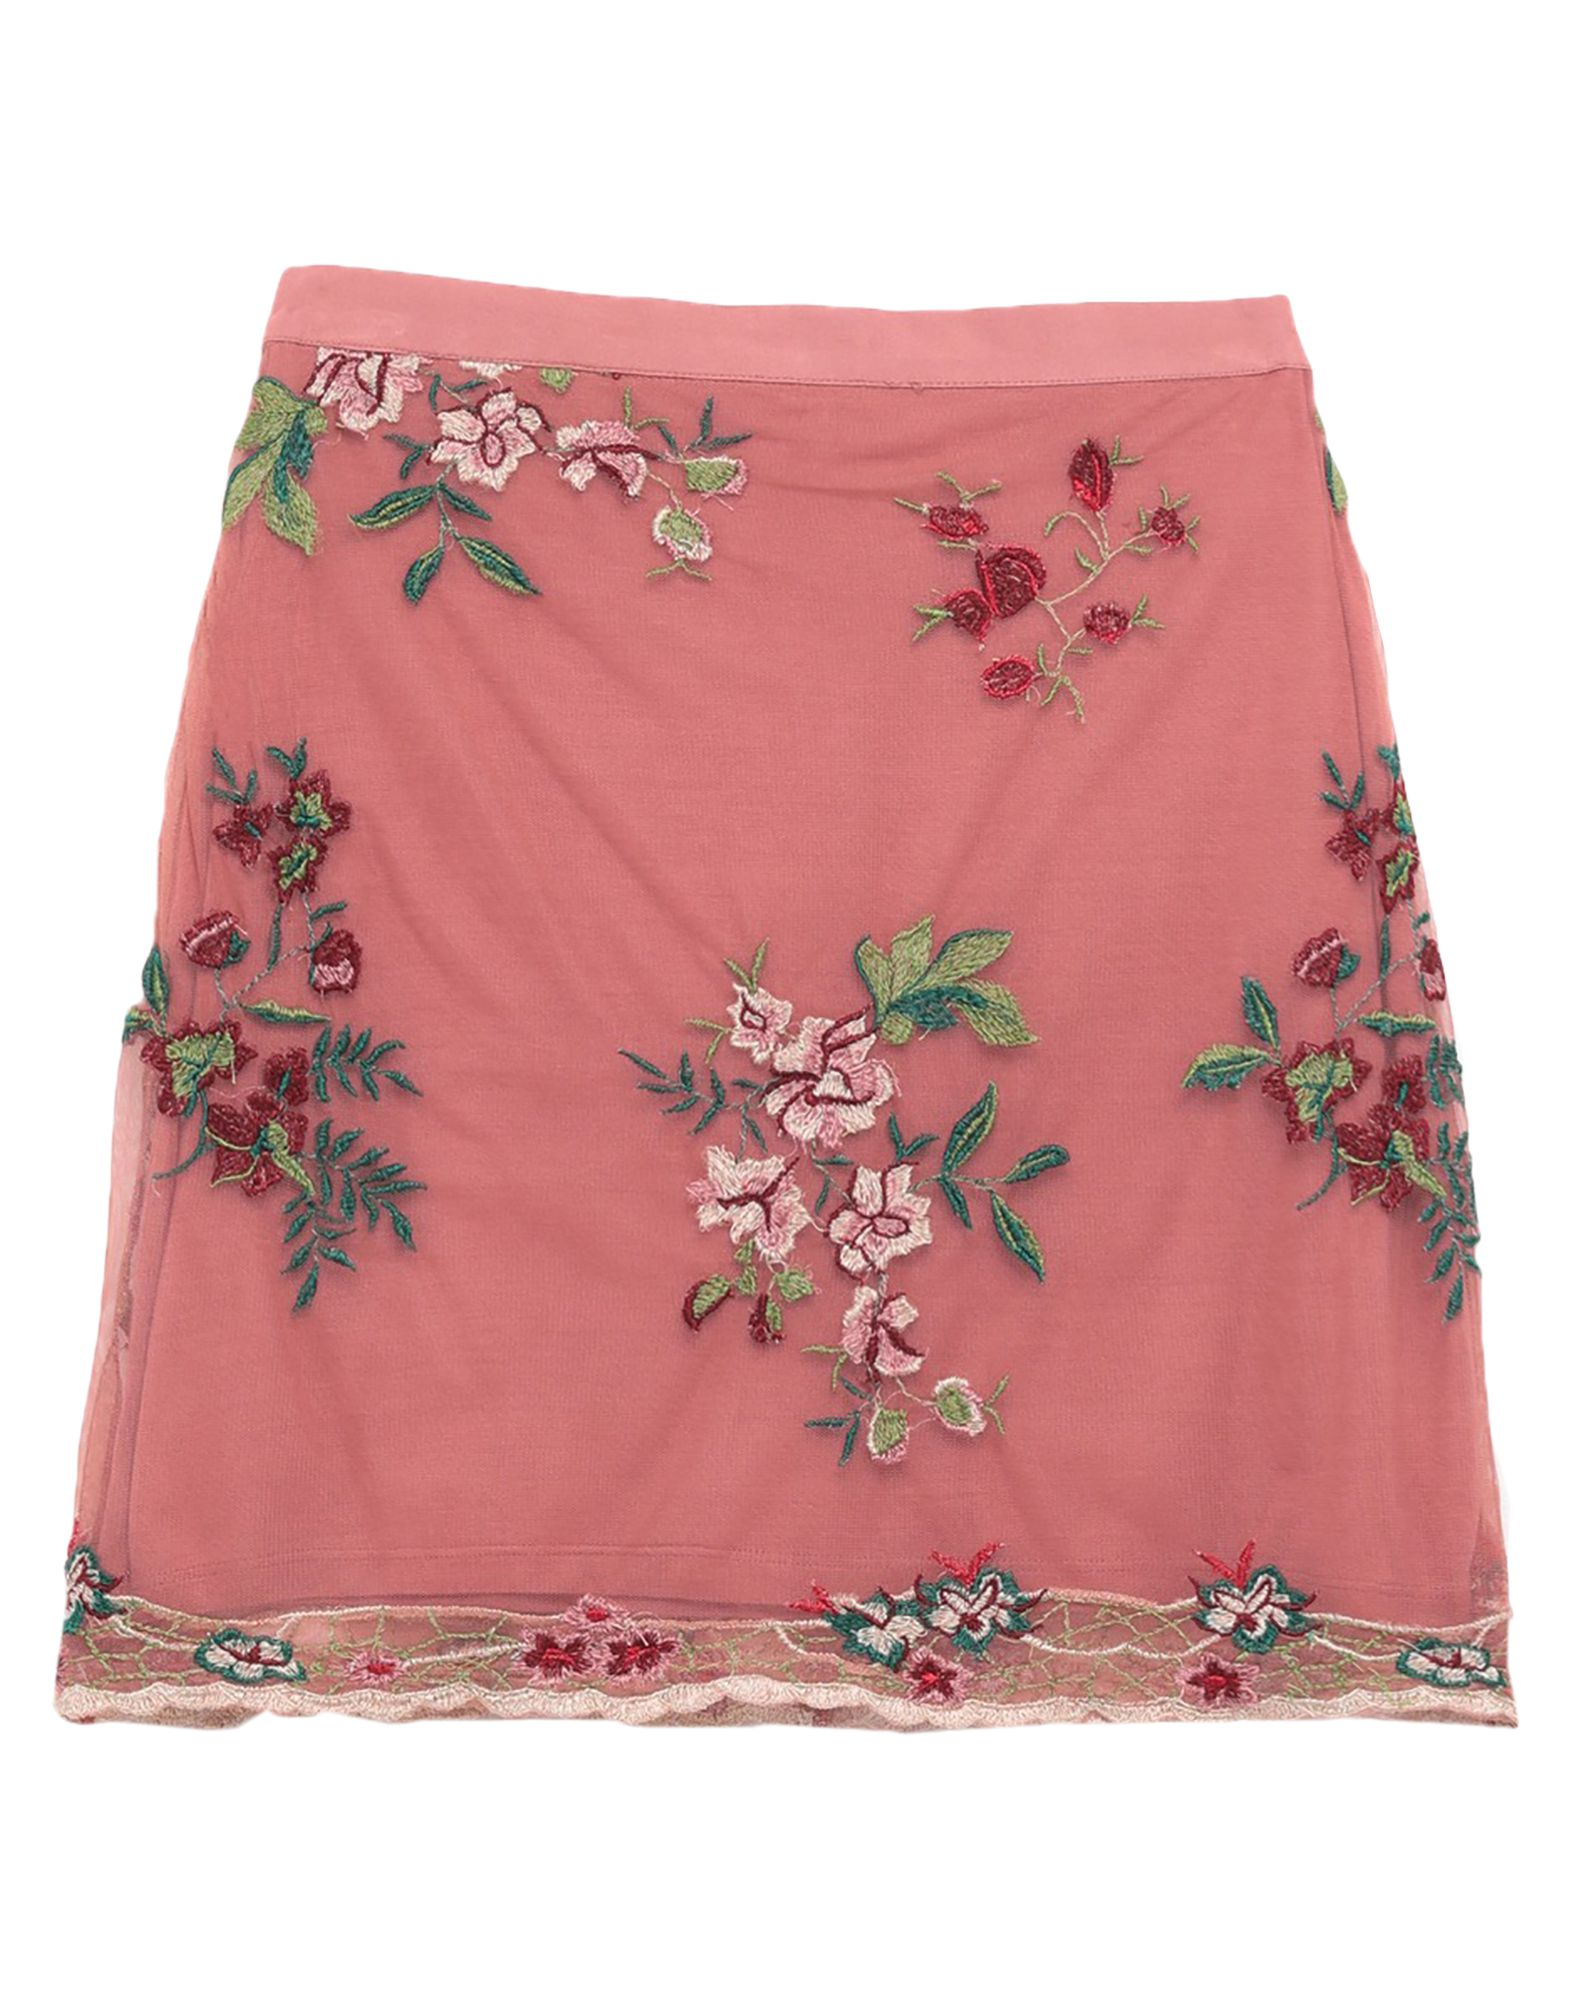 BAND OF GYPSIES Mini skirts. tulle, embroidered detailing, solid color, no pockets, rear closure, zipper closure, fully lined. 100% Polyester